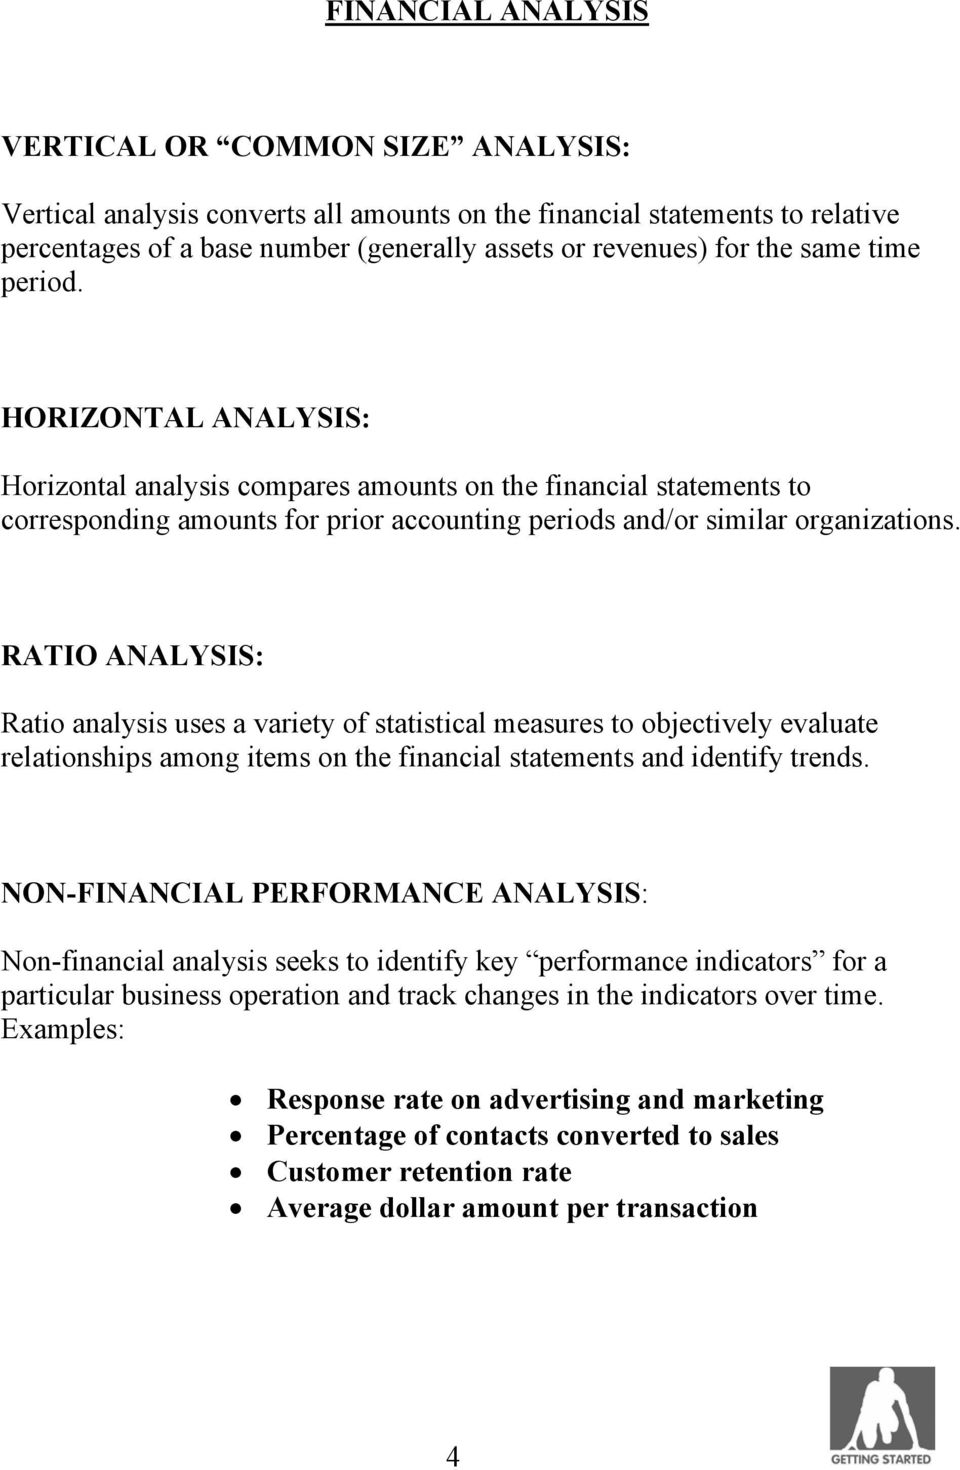 RATIO ANALYSIS: Ratio analysis uses a variety of statistical measures to objectively evaluate relationships among items on the financial statements and identify trends.